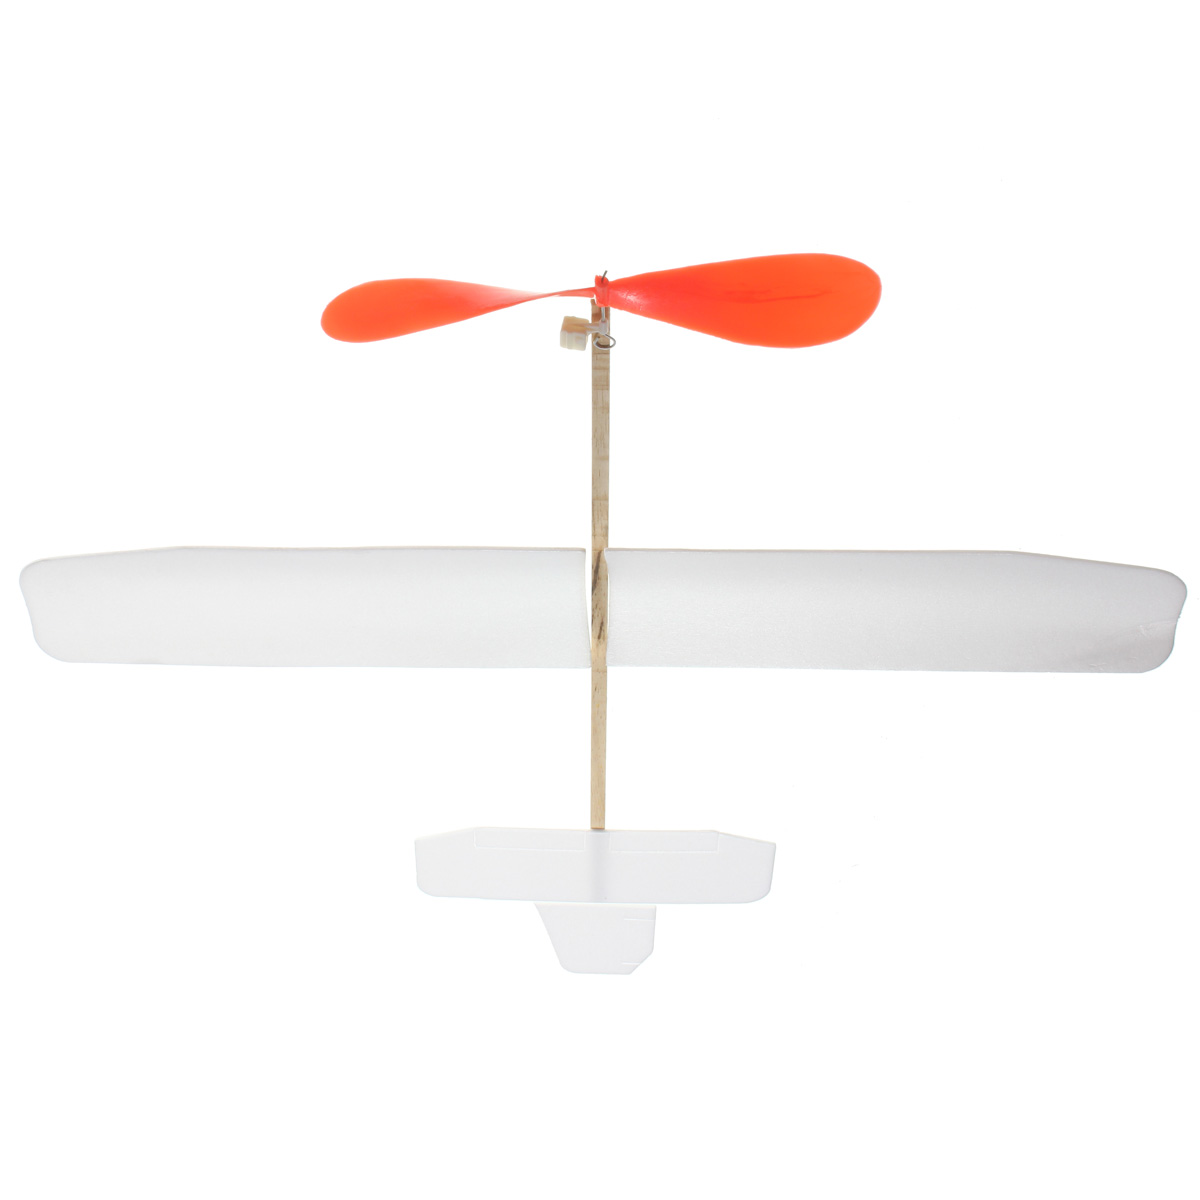 Aircraft Powered Sailplane Model Glider Power Prop Flying Toy